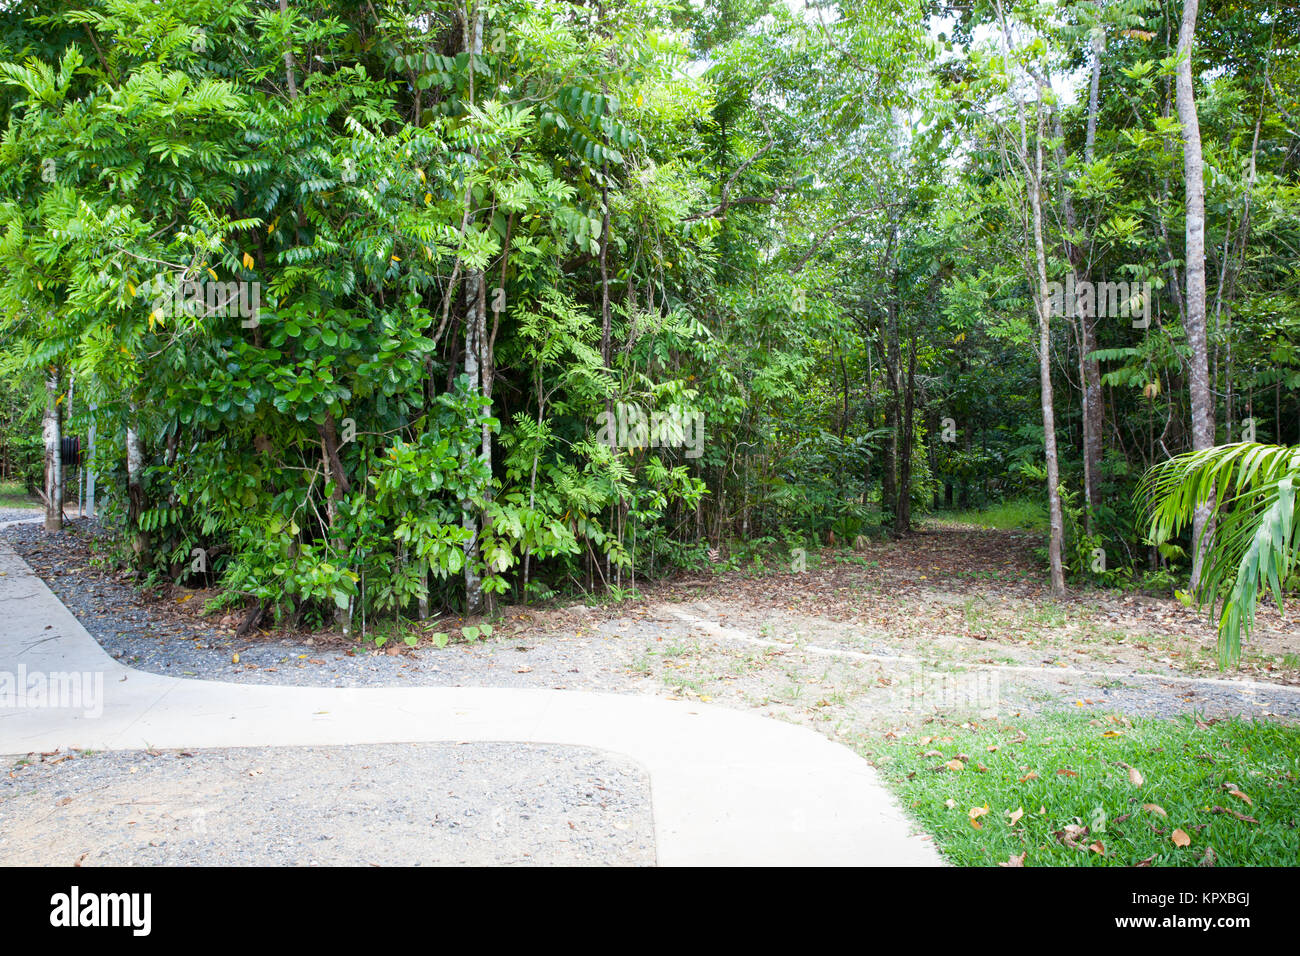 Nature tourist rainforest stock photos nature tourist for Diwan queensland